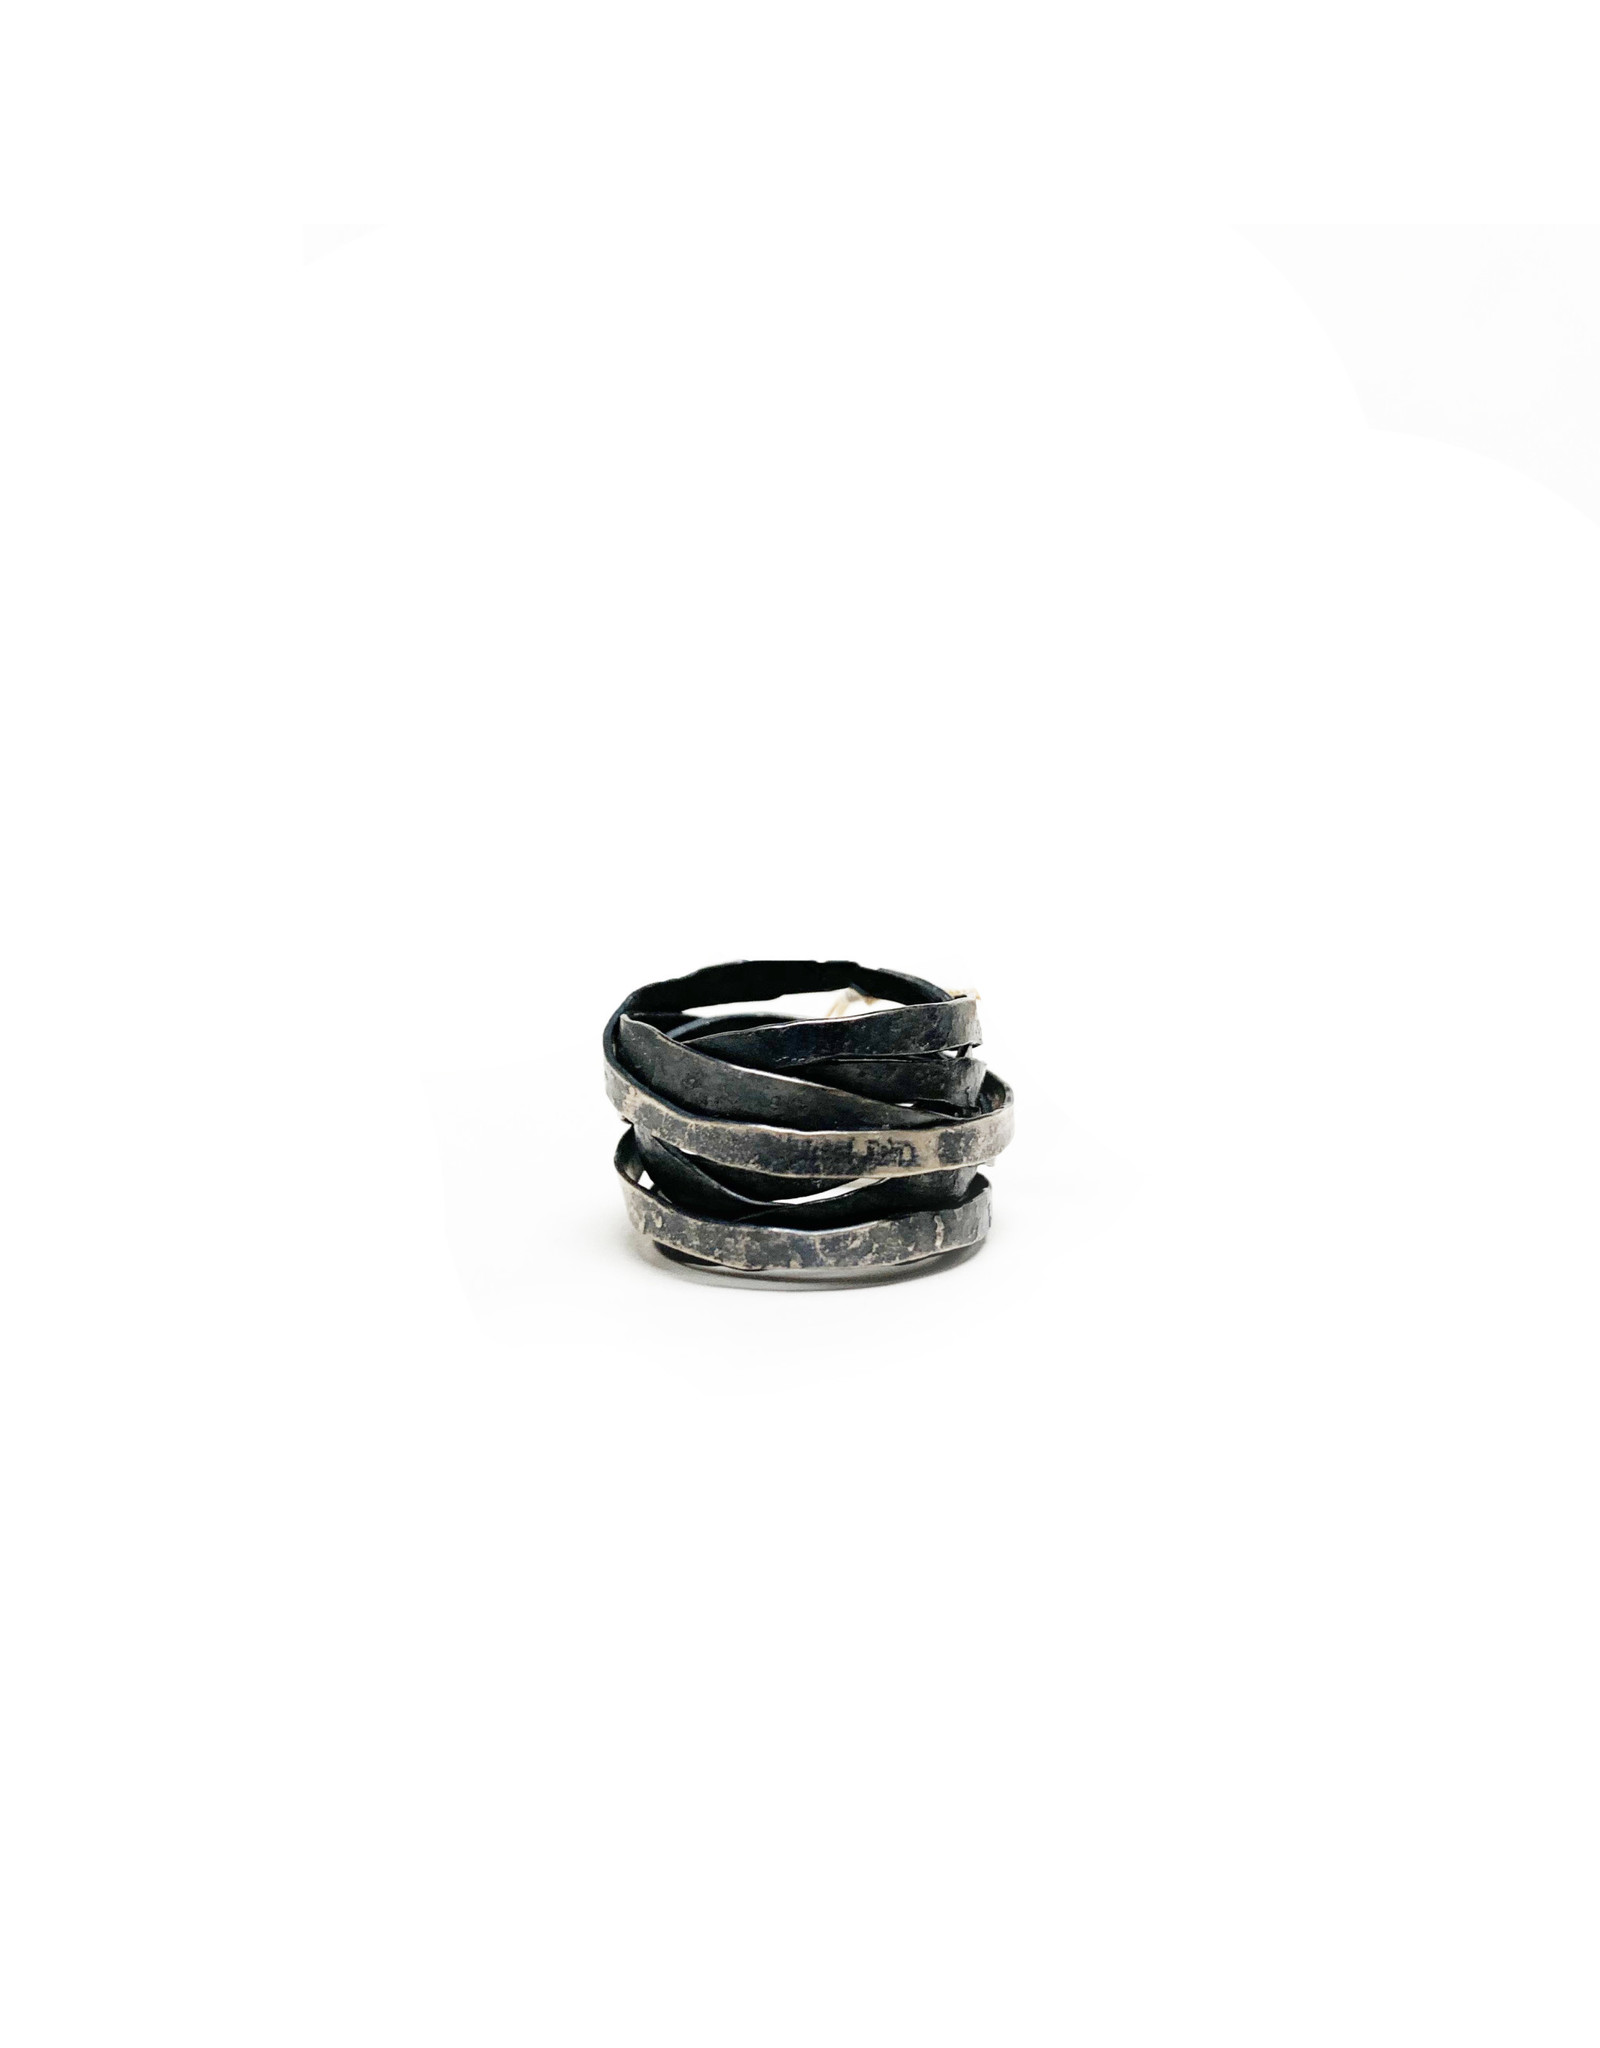 Bosco Jewelry Bosco Oxi Sterling Silver Wrap Ring - Oxidized Silver